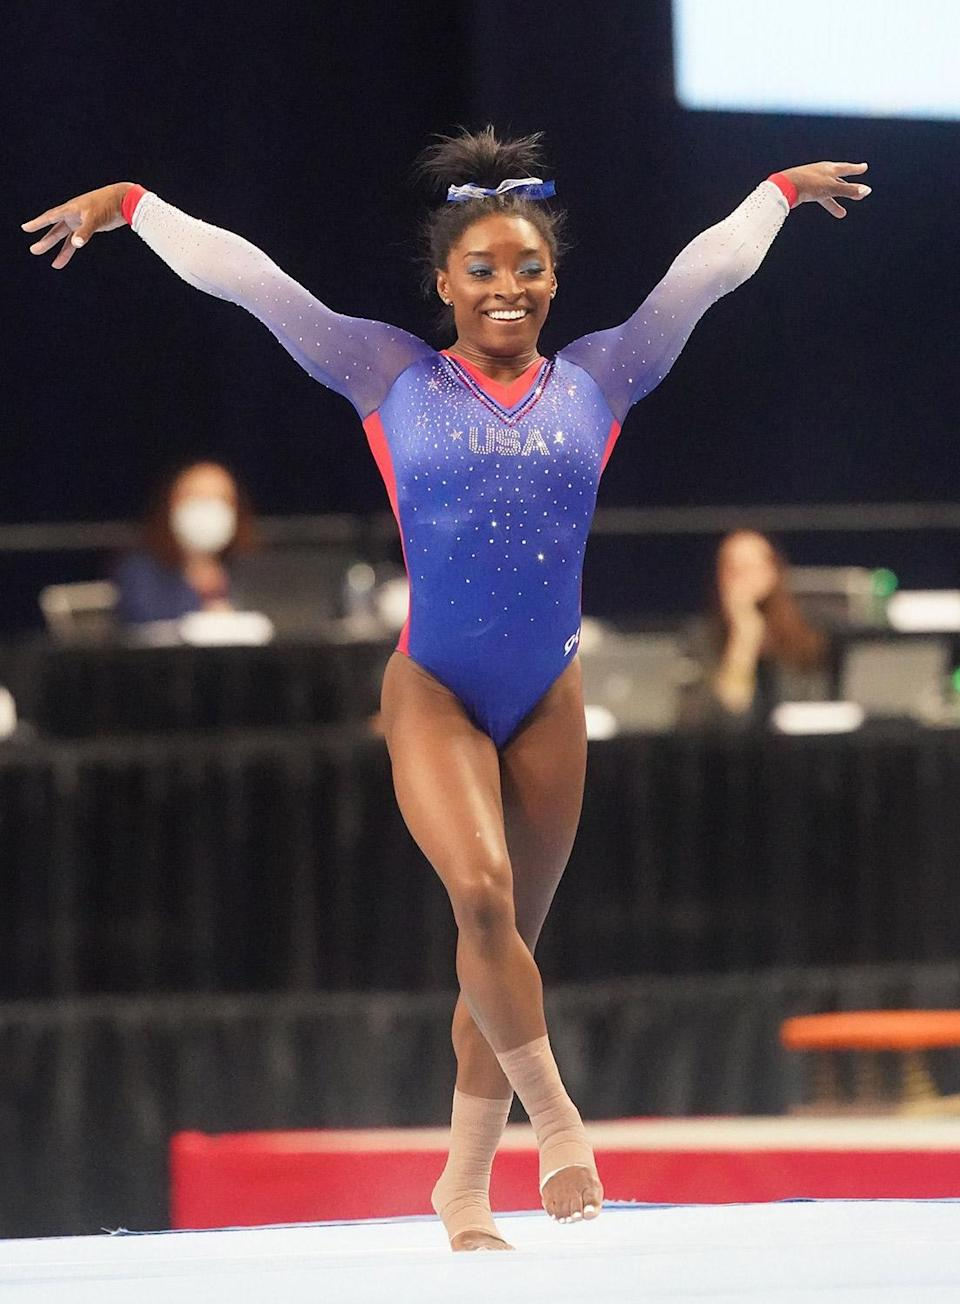 <p>Simone Biles nails her floor routine during Day 1 of the Women's U.S. Olympic Gymnastic Trials in St. Louis.</p>